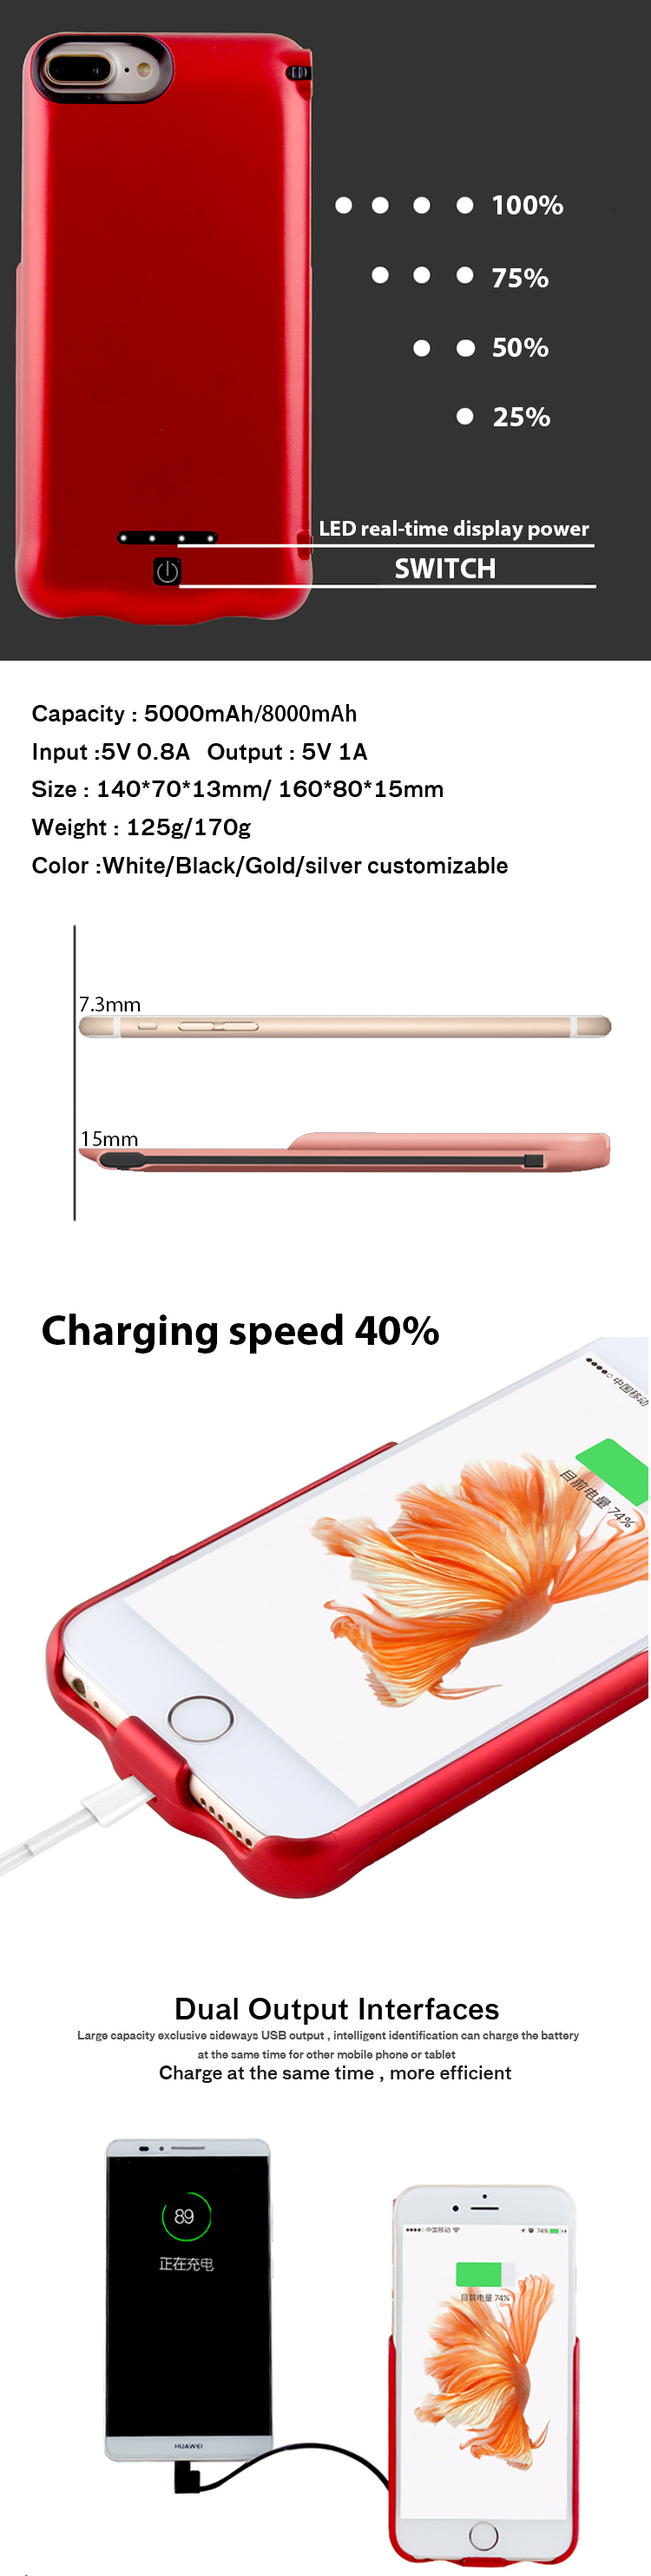 Custome made powerbank case for iphone with stand mini 5000mAh/8000mAh battery power bank case